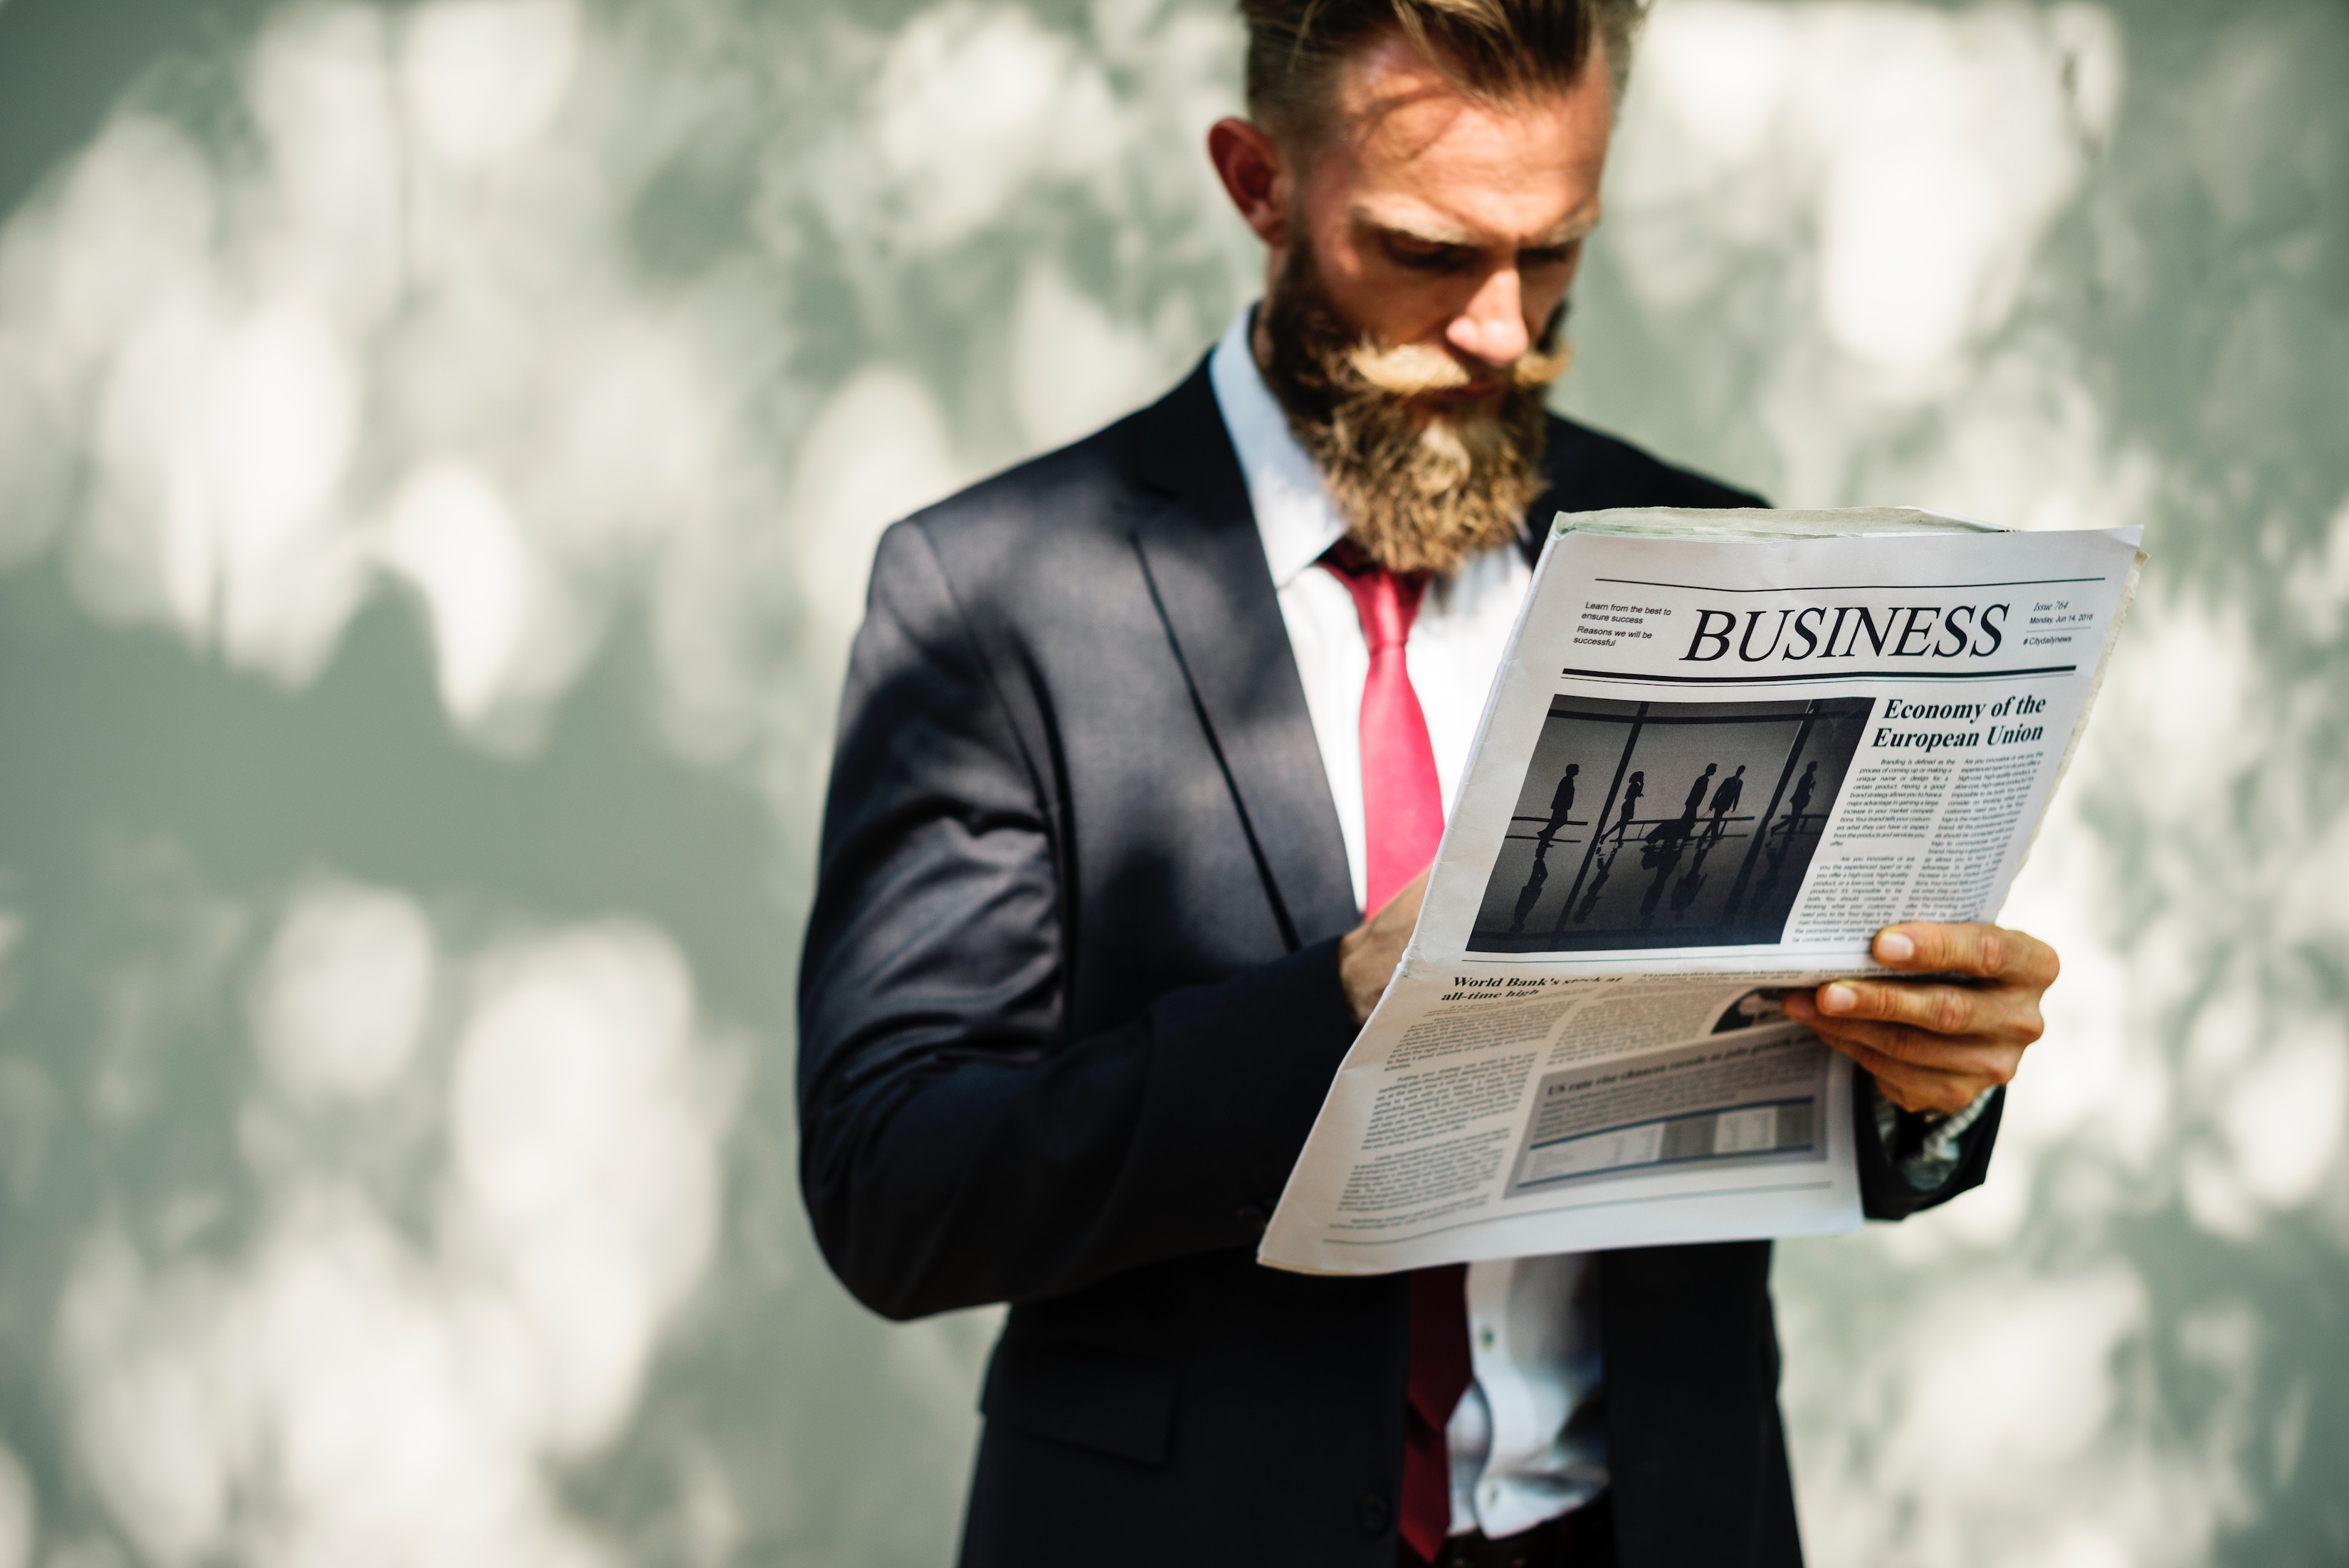 posh man in suit reading business section of newspaper